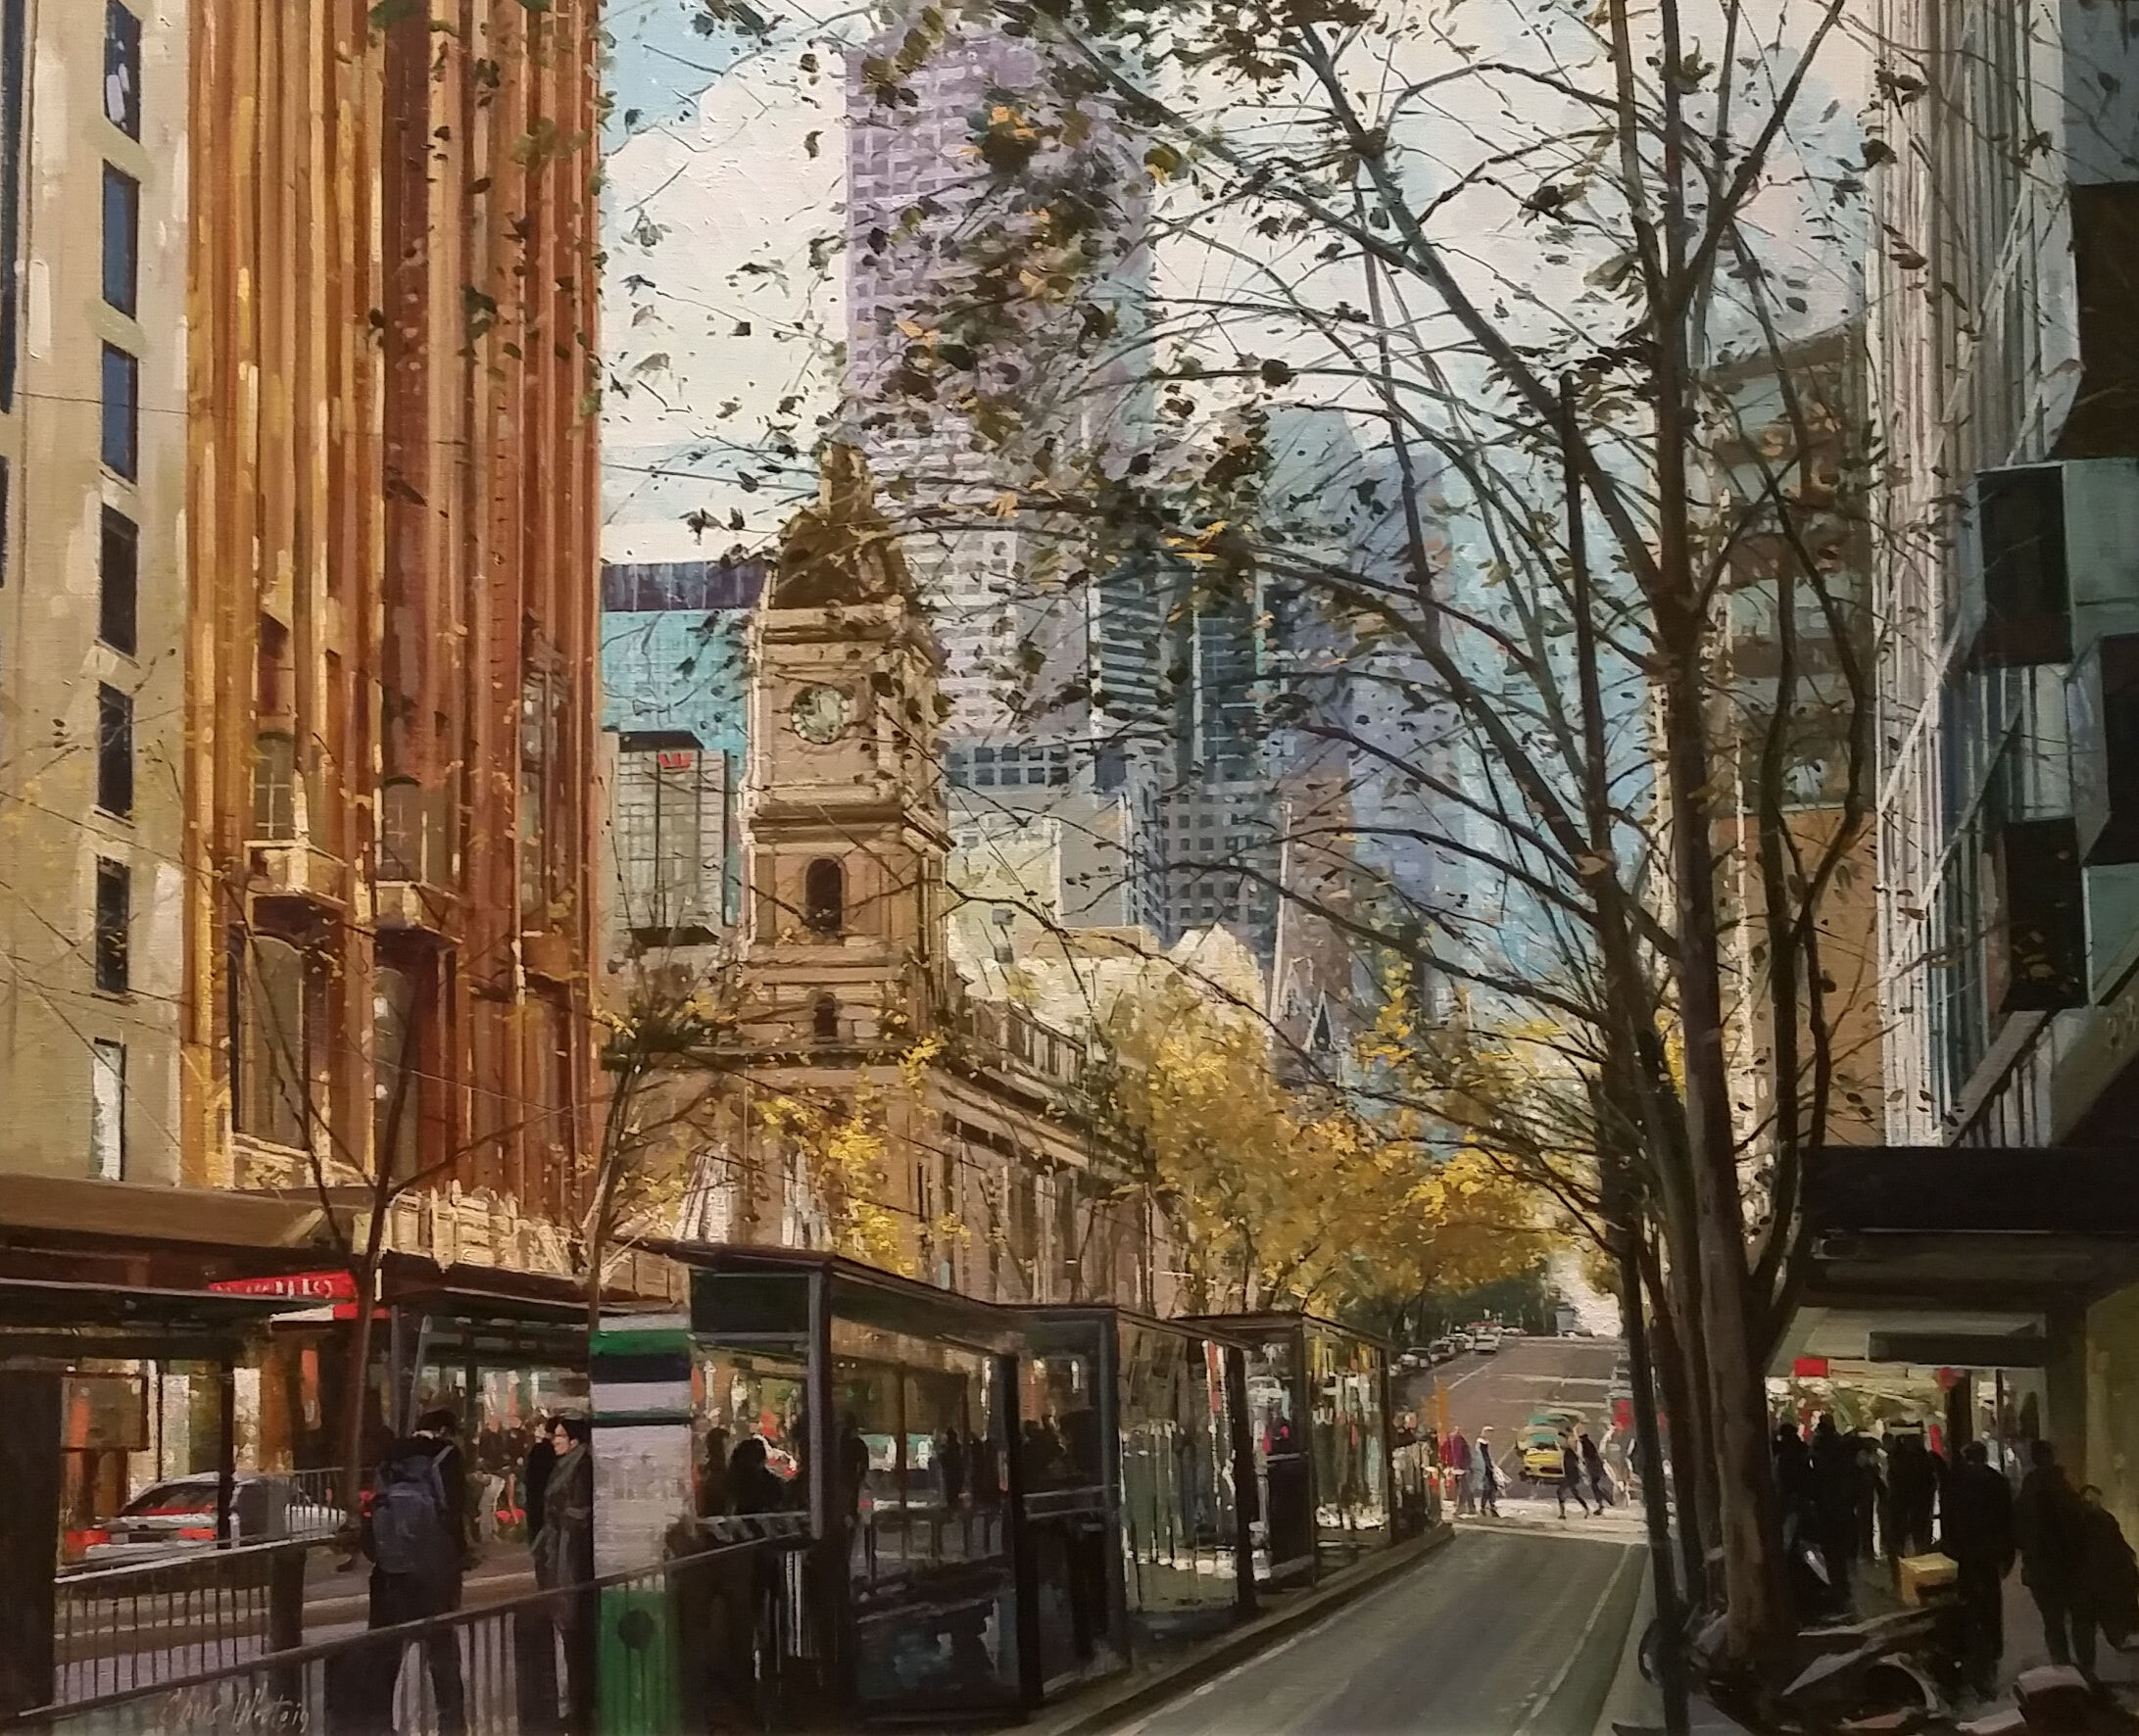 Chris White, Winter, Collins Looking East, Oil on Canvas, $3500_highly commended 2021